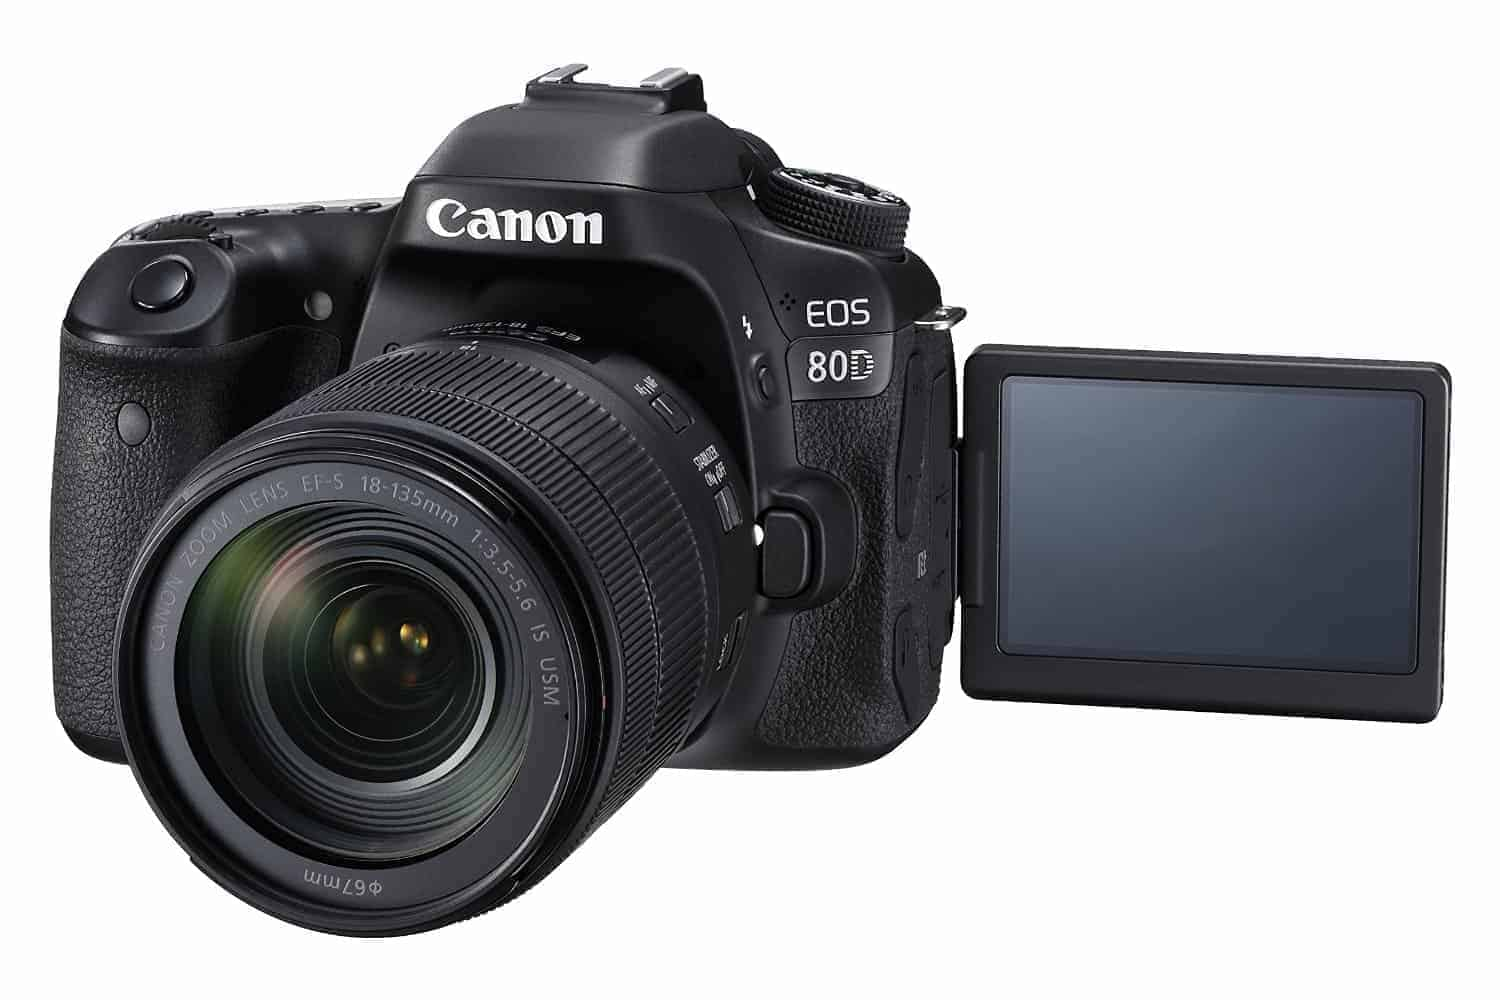 Double Canon Eos Digital Slr Kit Canon Eos Camera Package Deal Stark Insider Canon 80d Bundle Refurbished Canon 80d Refurbished Review dpreview Canon 80d Refurbished